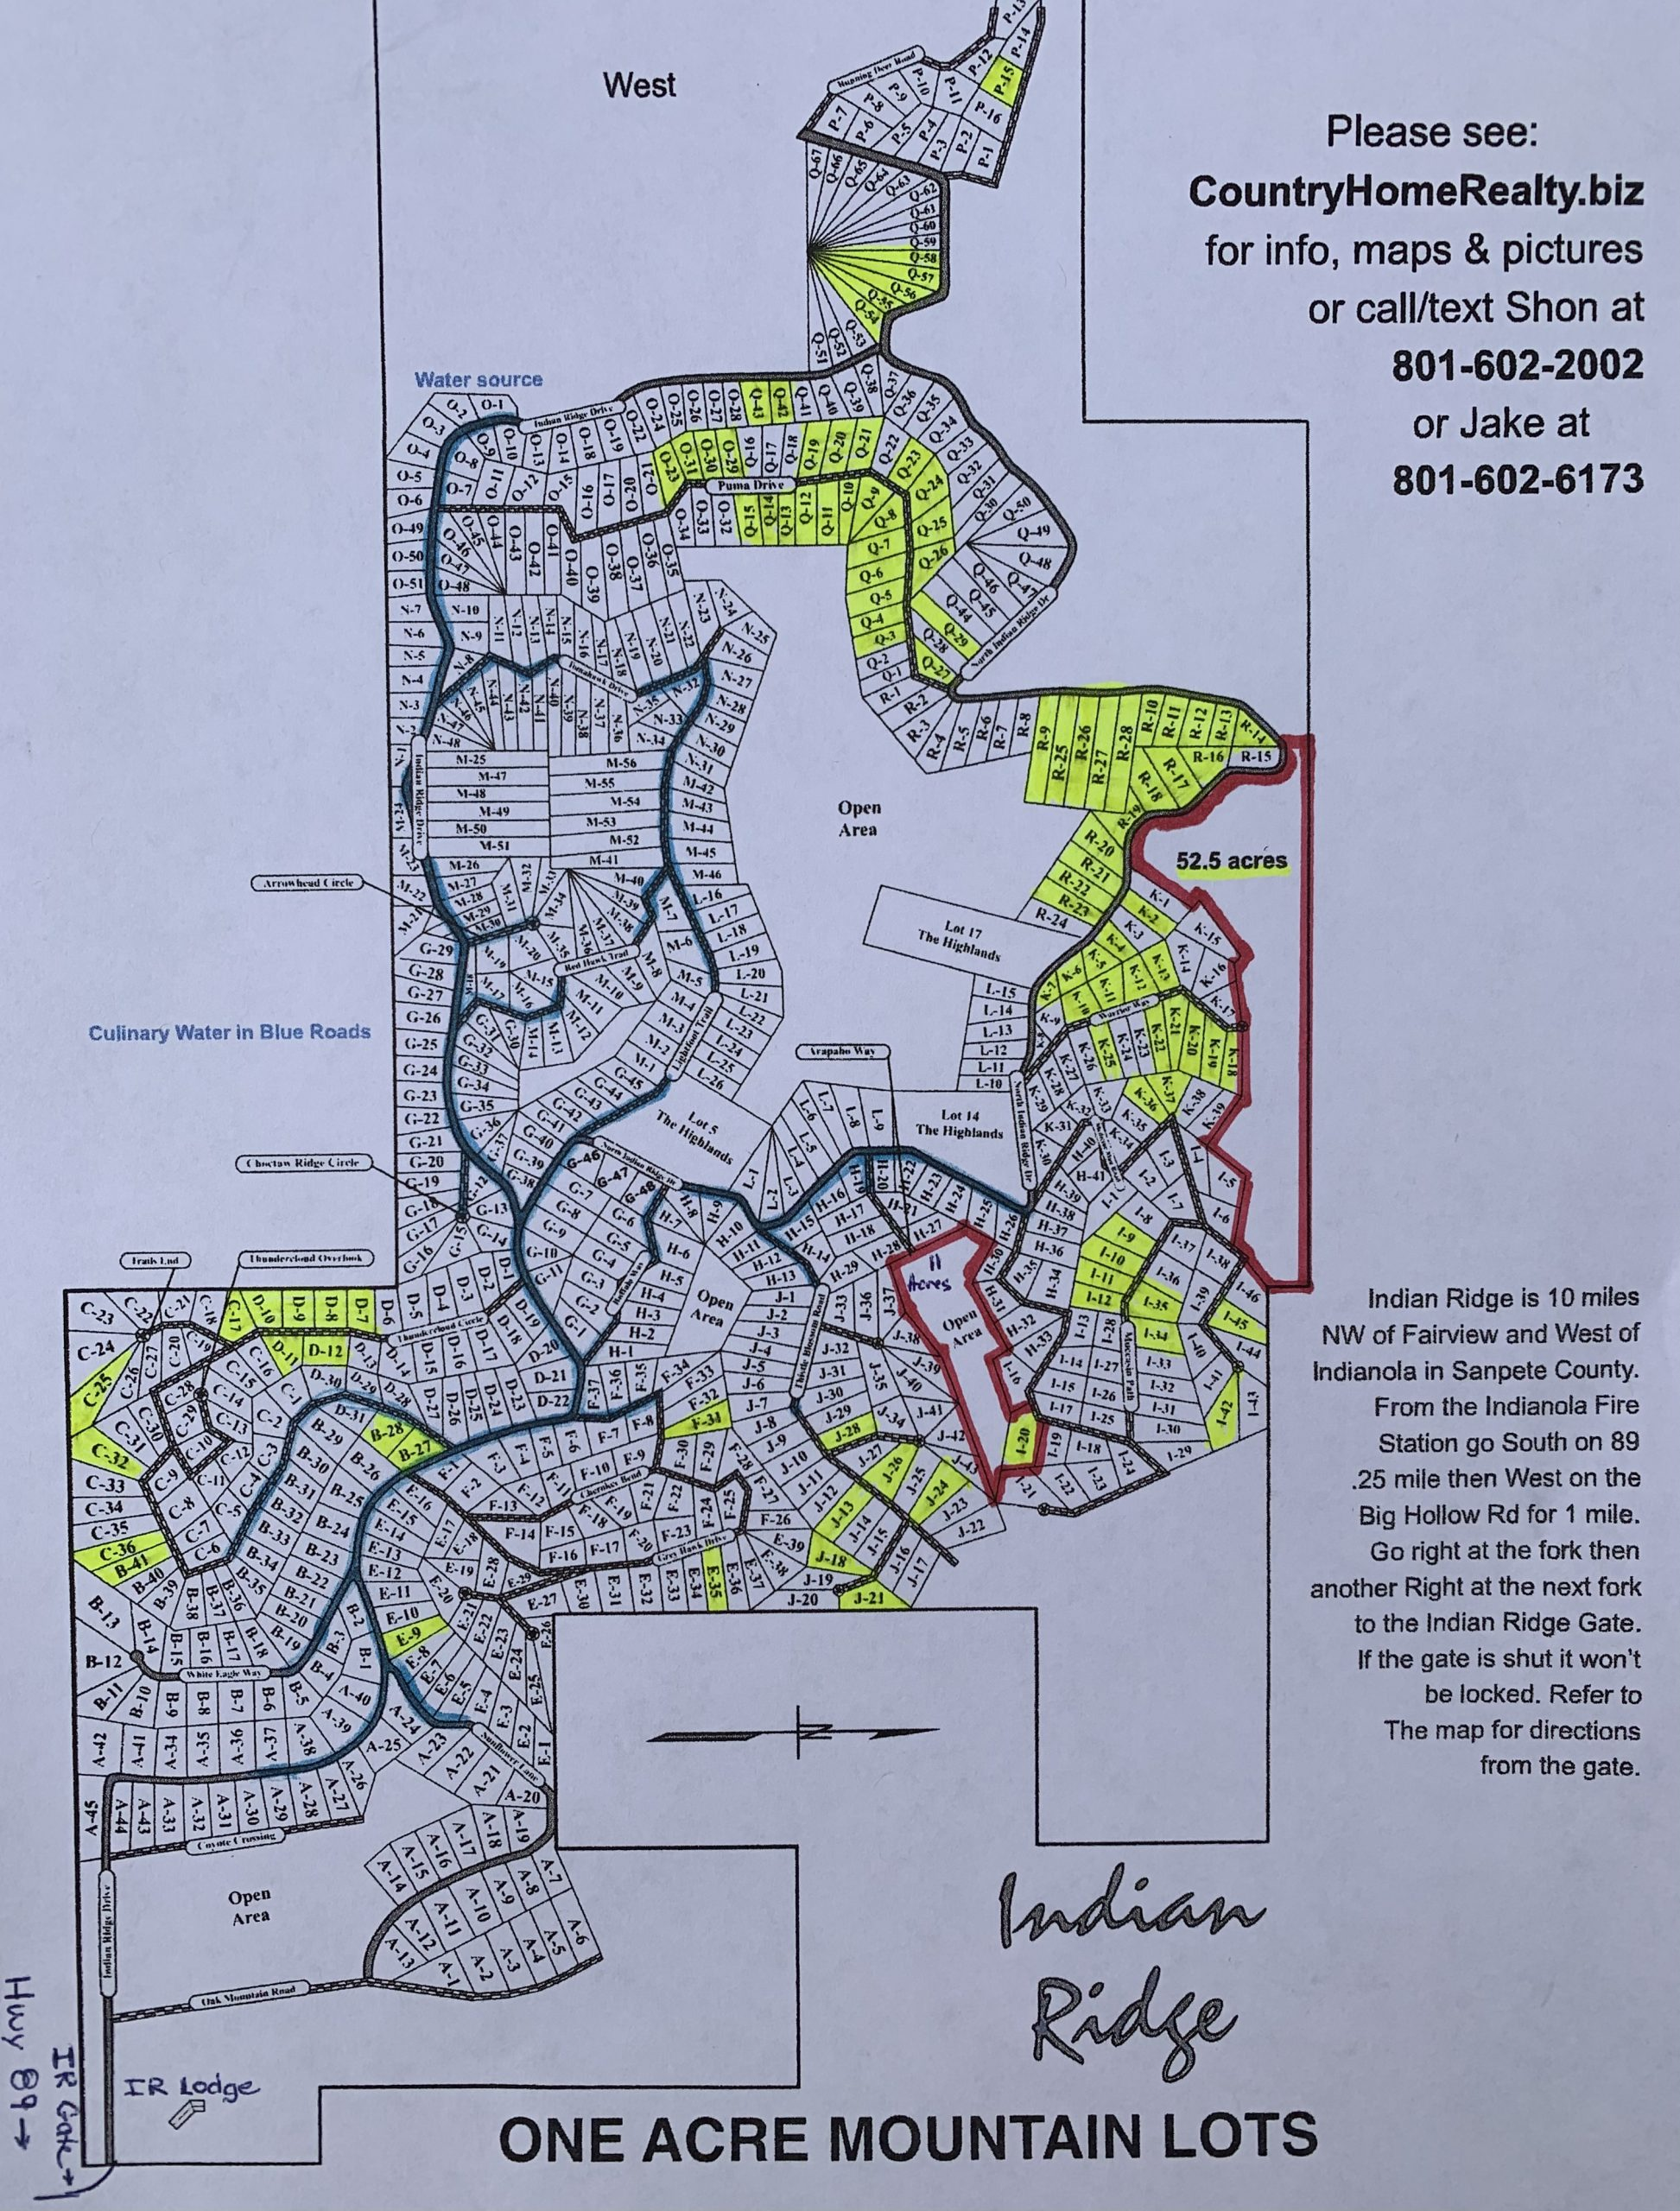 1 Acre Cabin, Home or Recreational Lots in Indian Ridge starting at $6,500 about 1 hour SE of Lehi.